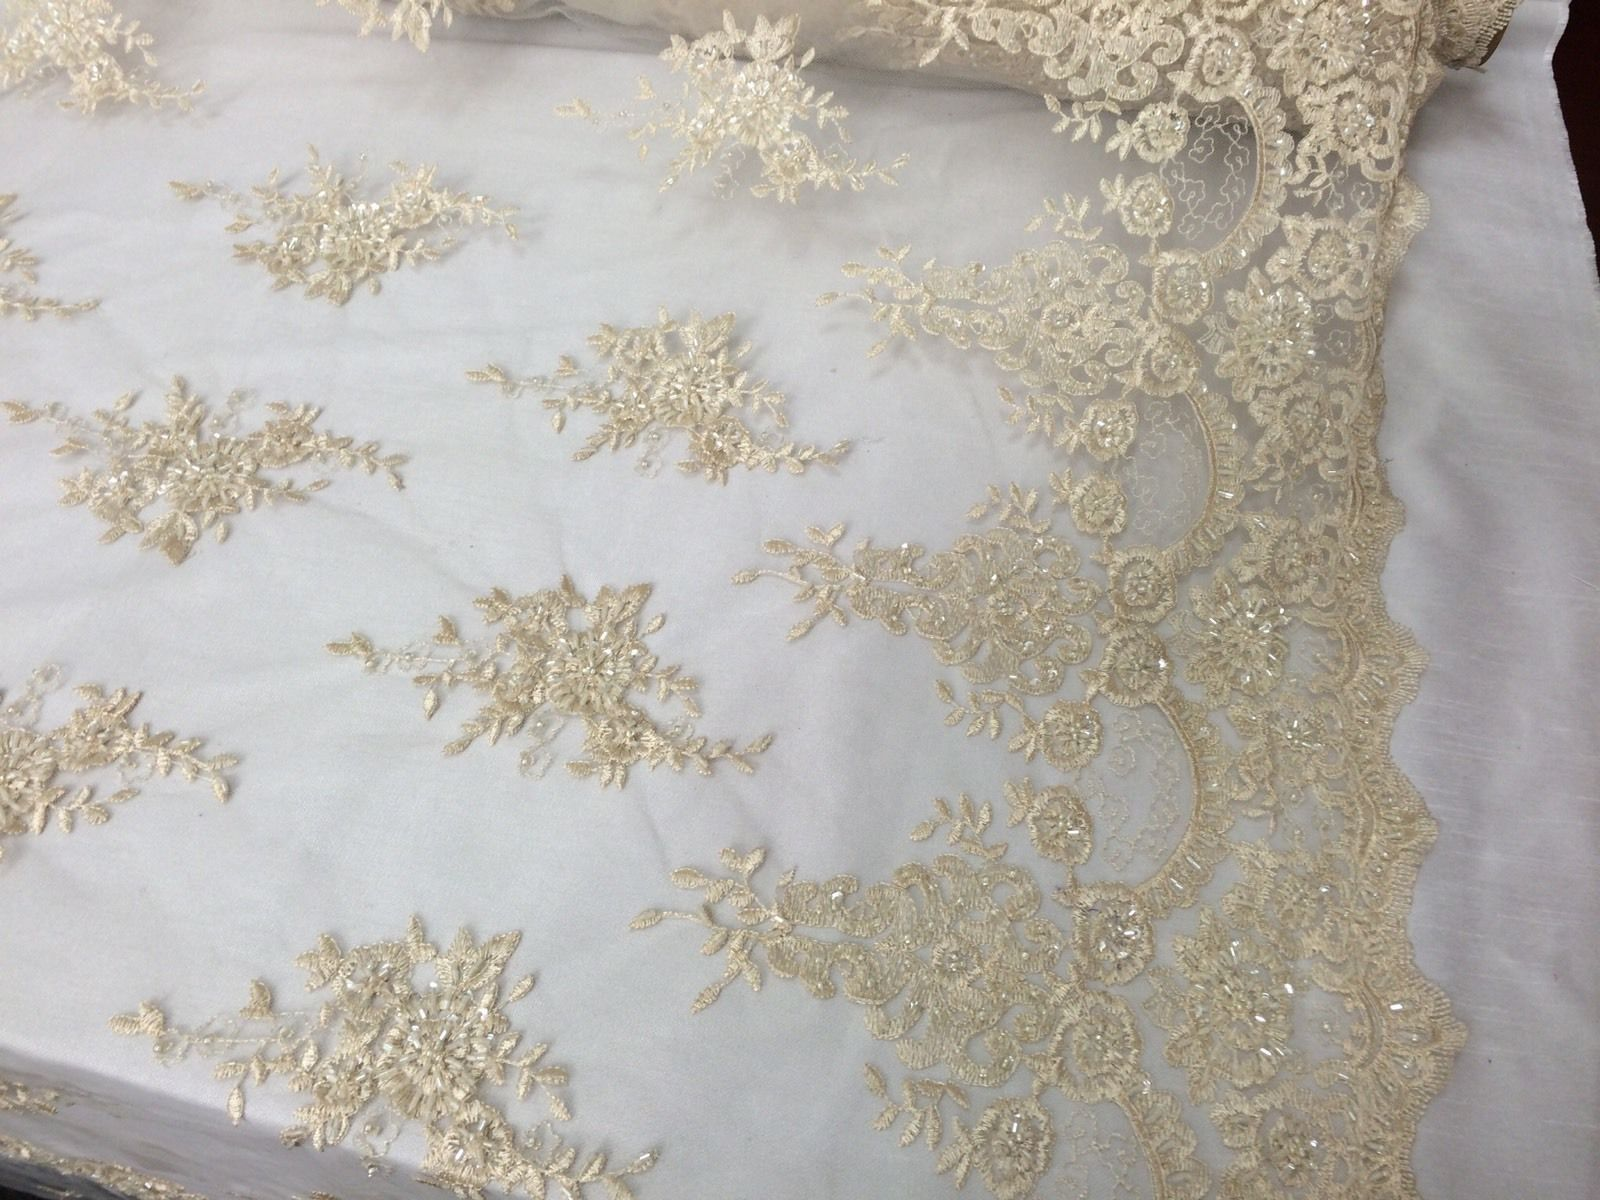 Bridal Cream French Design,Flower Embroider And Hand Beaded On A Mesh Lace. - KINGDOM OF FABRICS